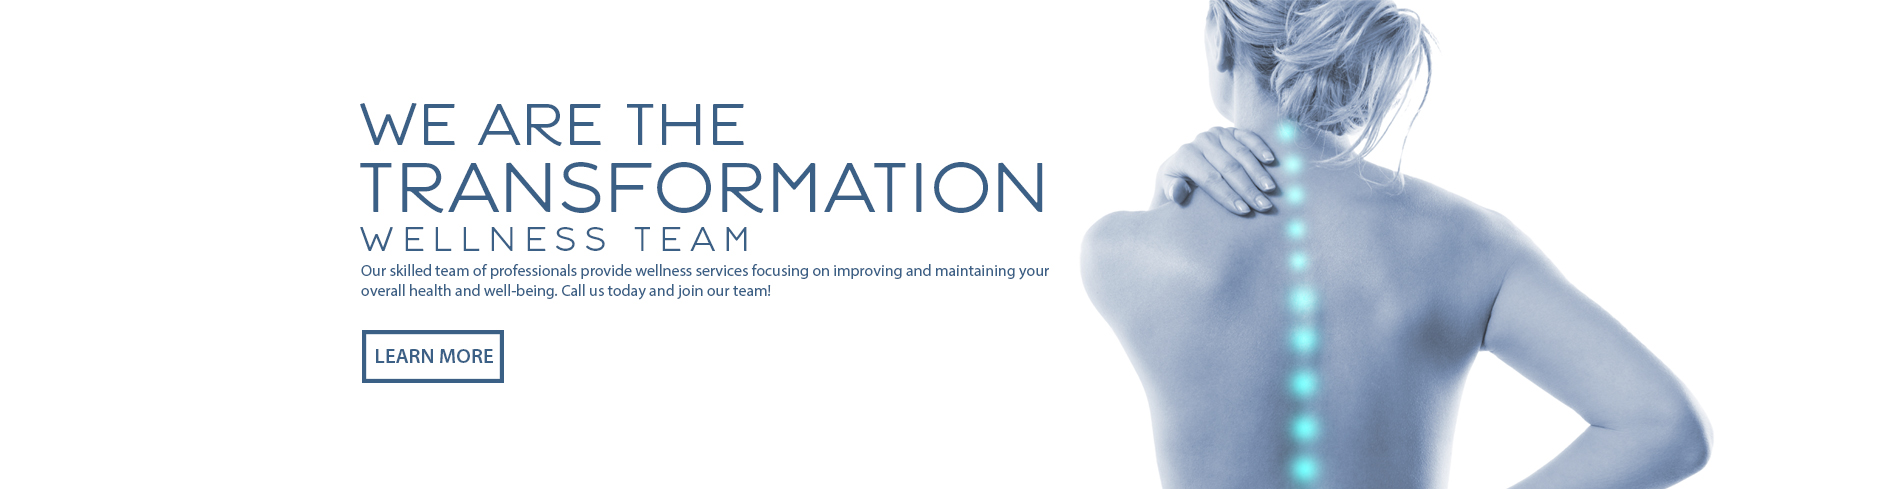 We are the Transformation Wellness Team